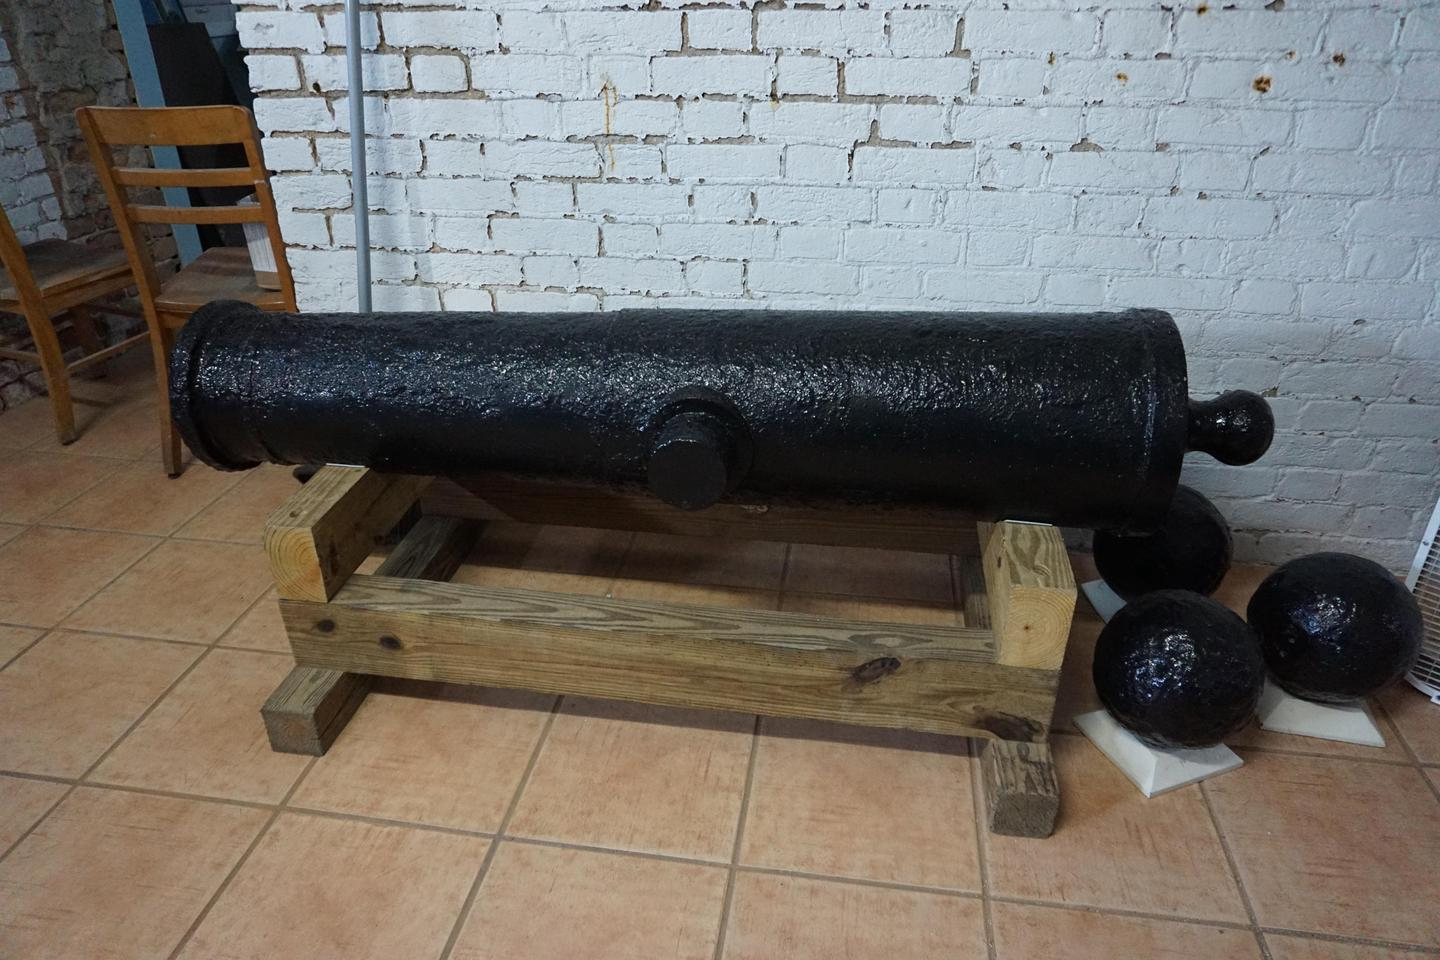 Dry Tortugas Visitor Center Cannon DisplayA preserved cannon on display at the Garden Key Visitor Center